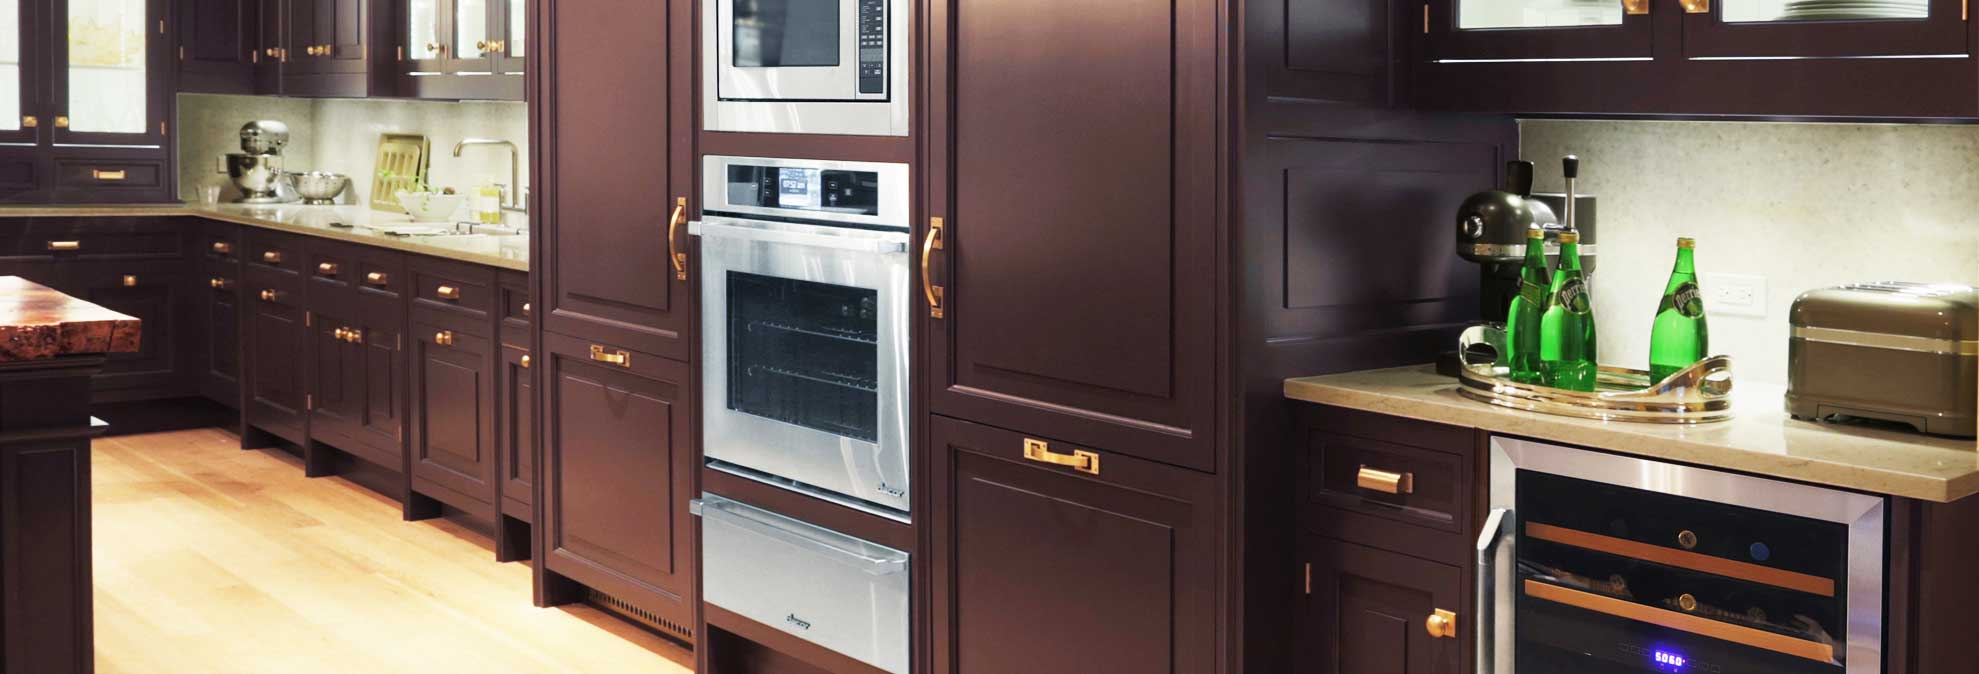 consumer reports kitchen cabinets best kitchen cabinet buying guide consumer reports 5677